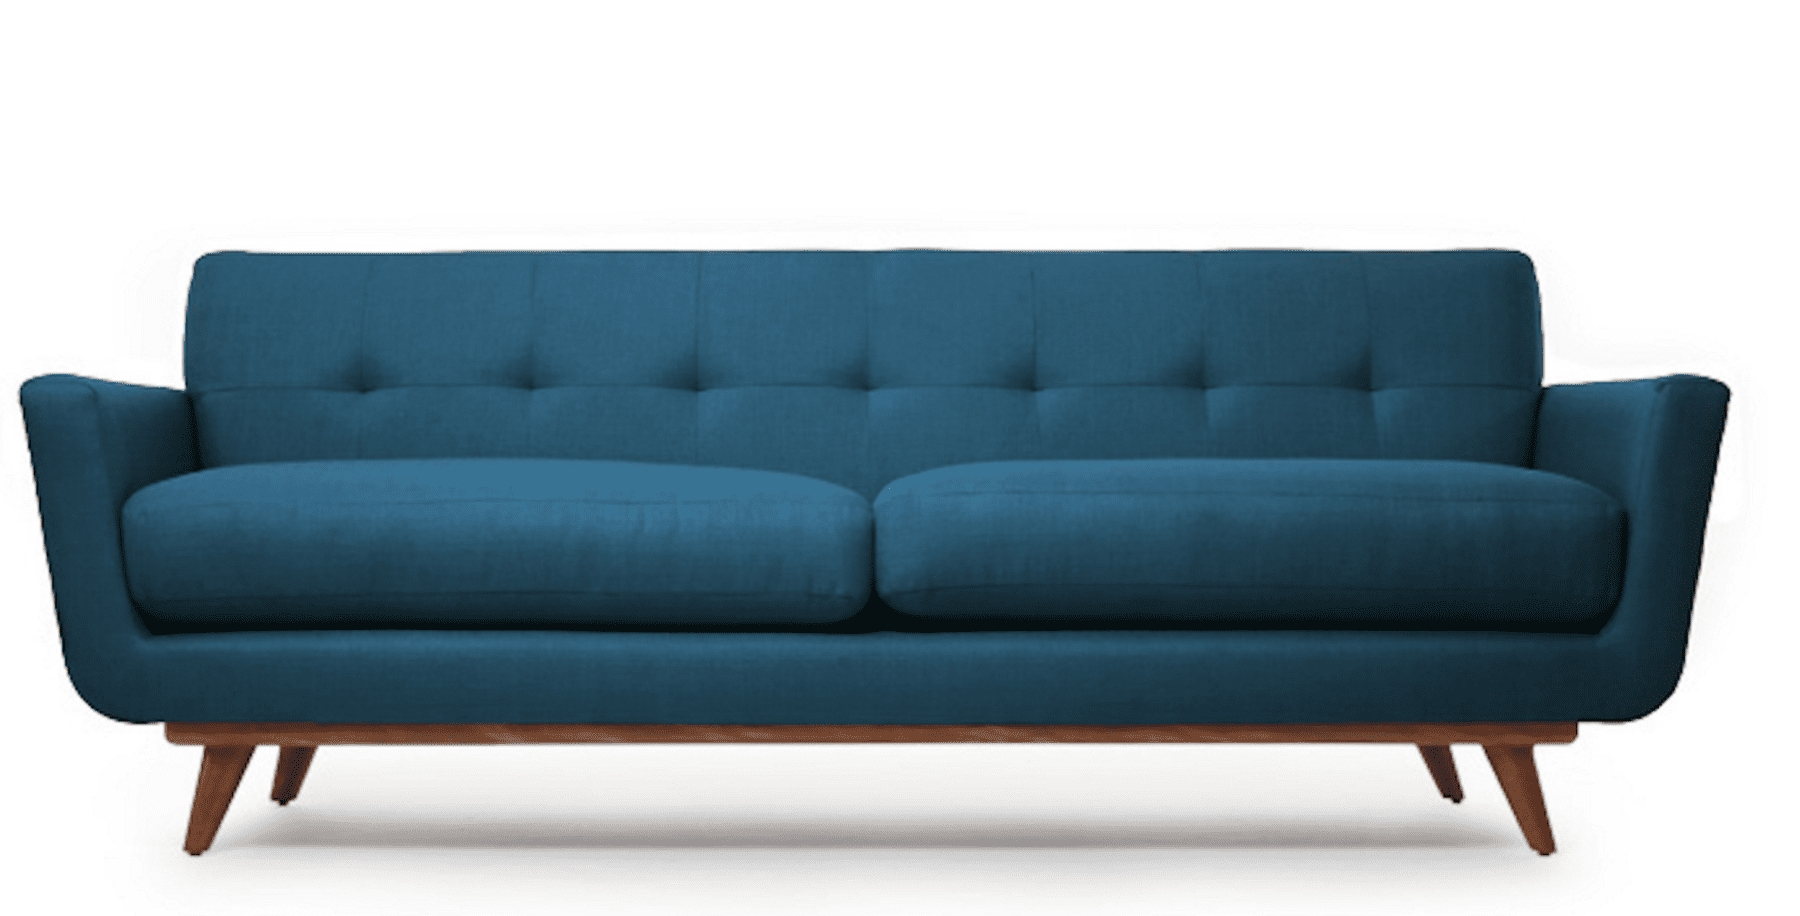 Sofas Center : Mid Century Sofas For Sale Houston Danish Modern Intended For Modern Sofas Houston (View 18 of 20)